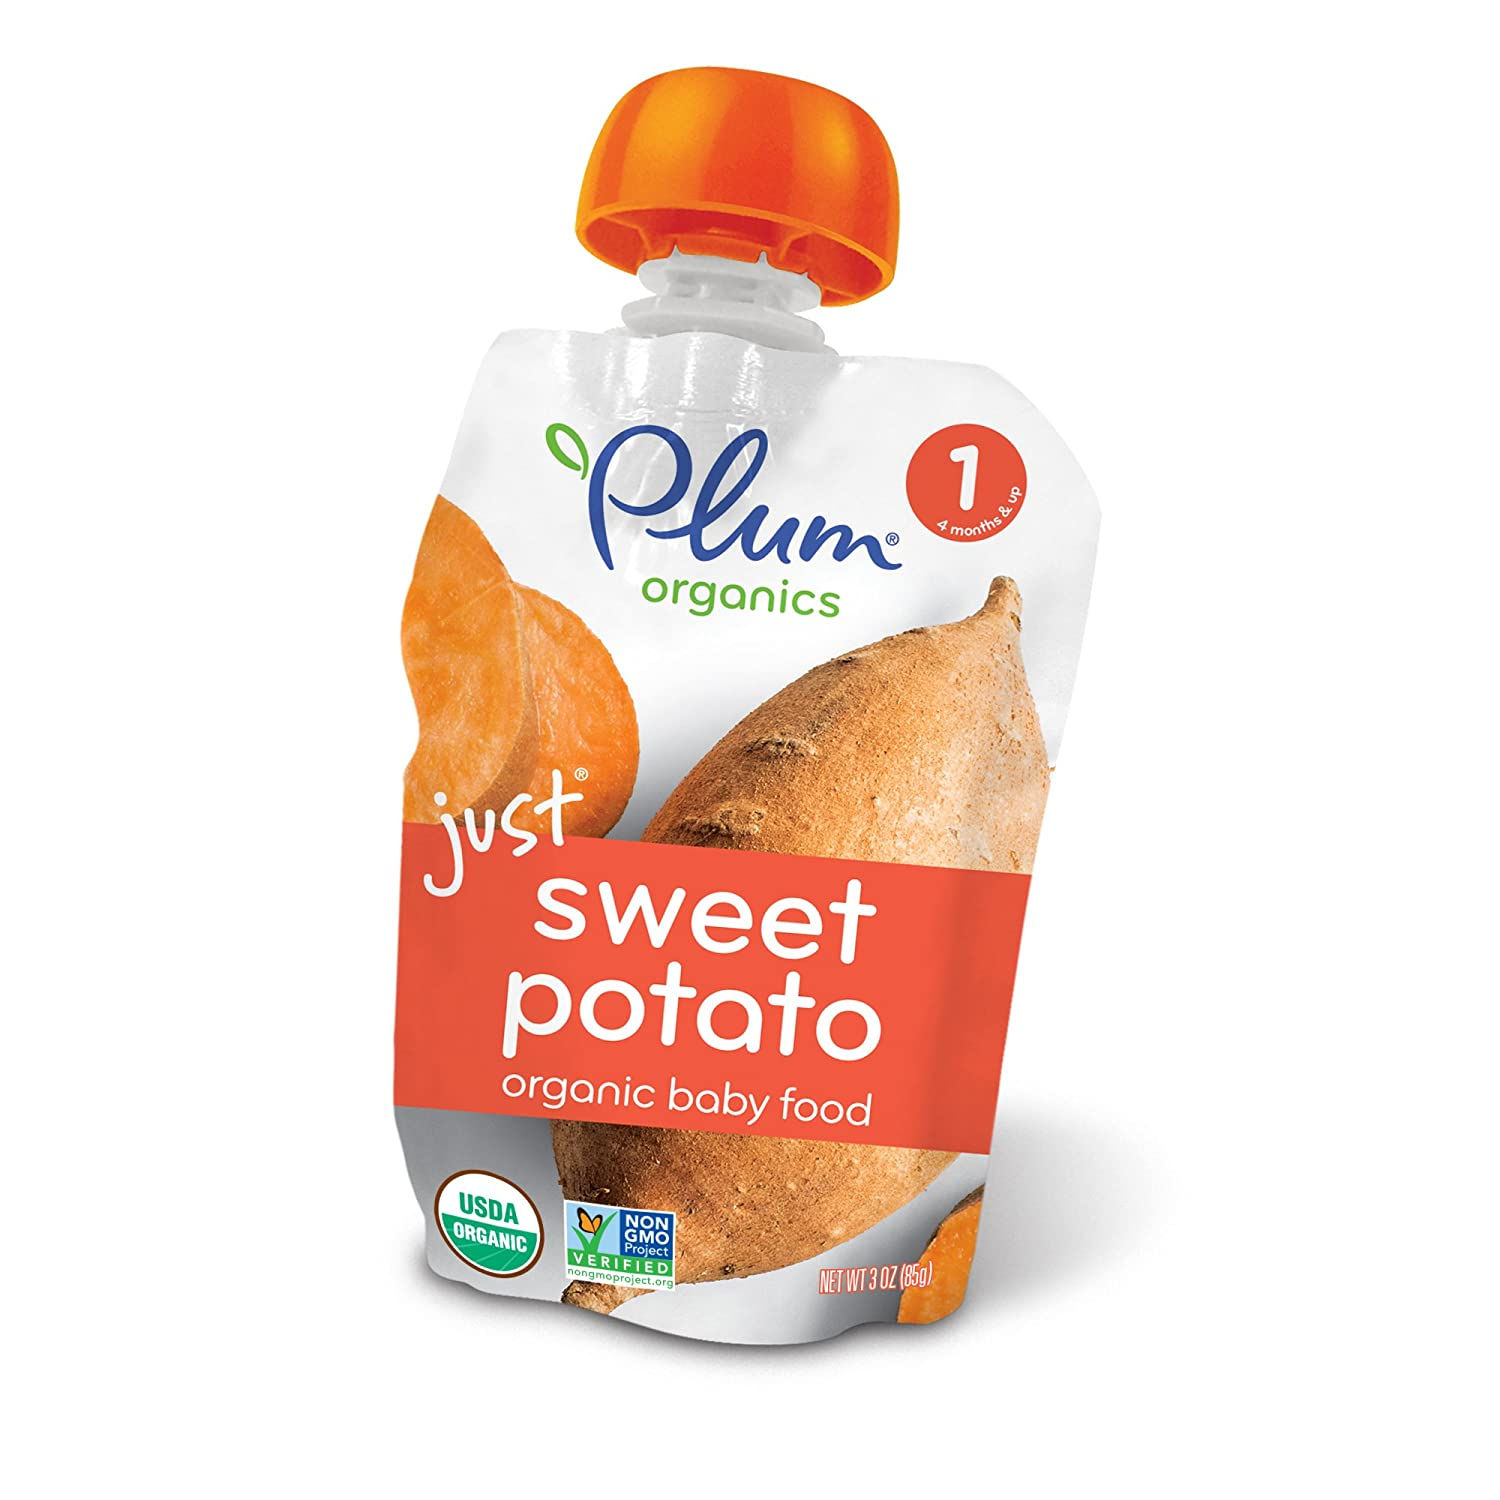 Plum Organics Stage 1, Organic Baby Food, Just Sweet Potato, 3.0 ounce pouch (Pack of 12) Plum Organics Baby